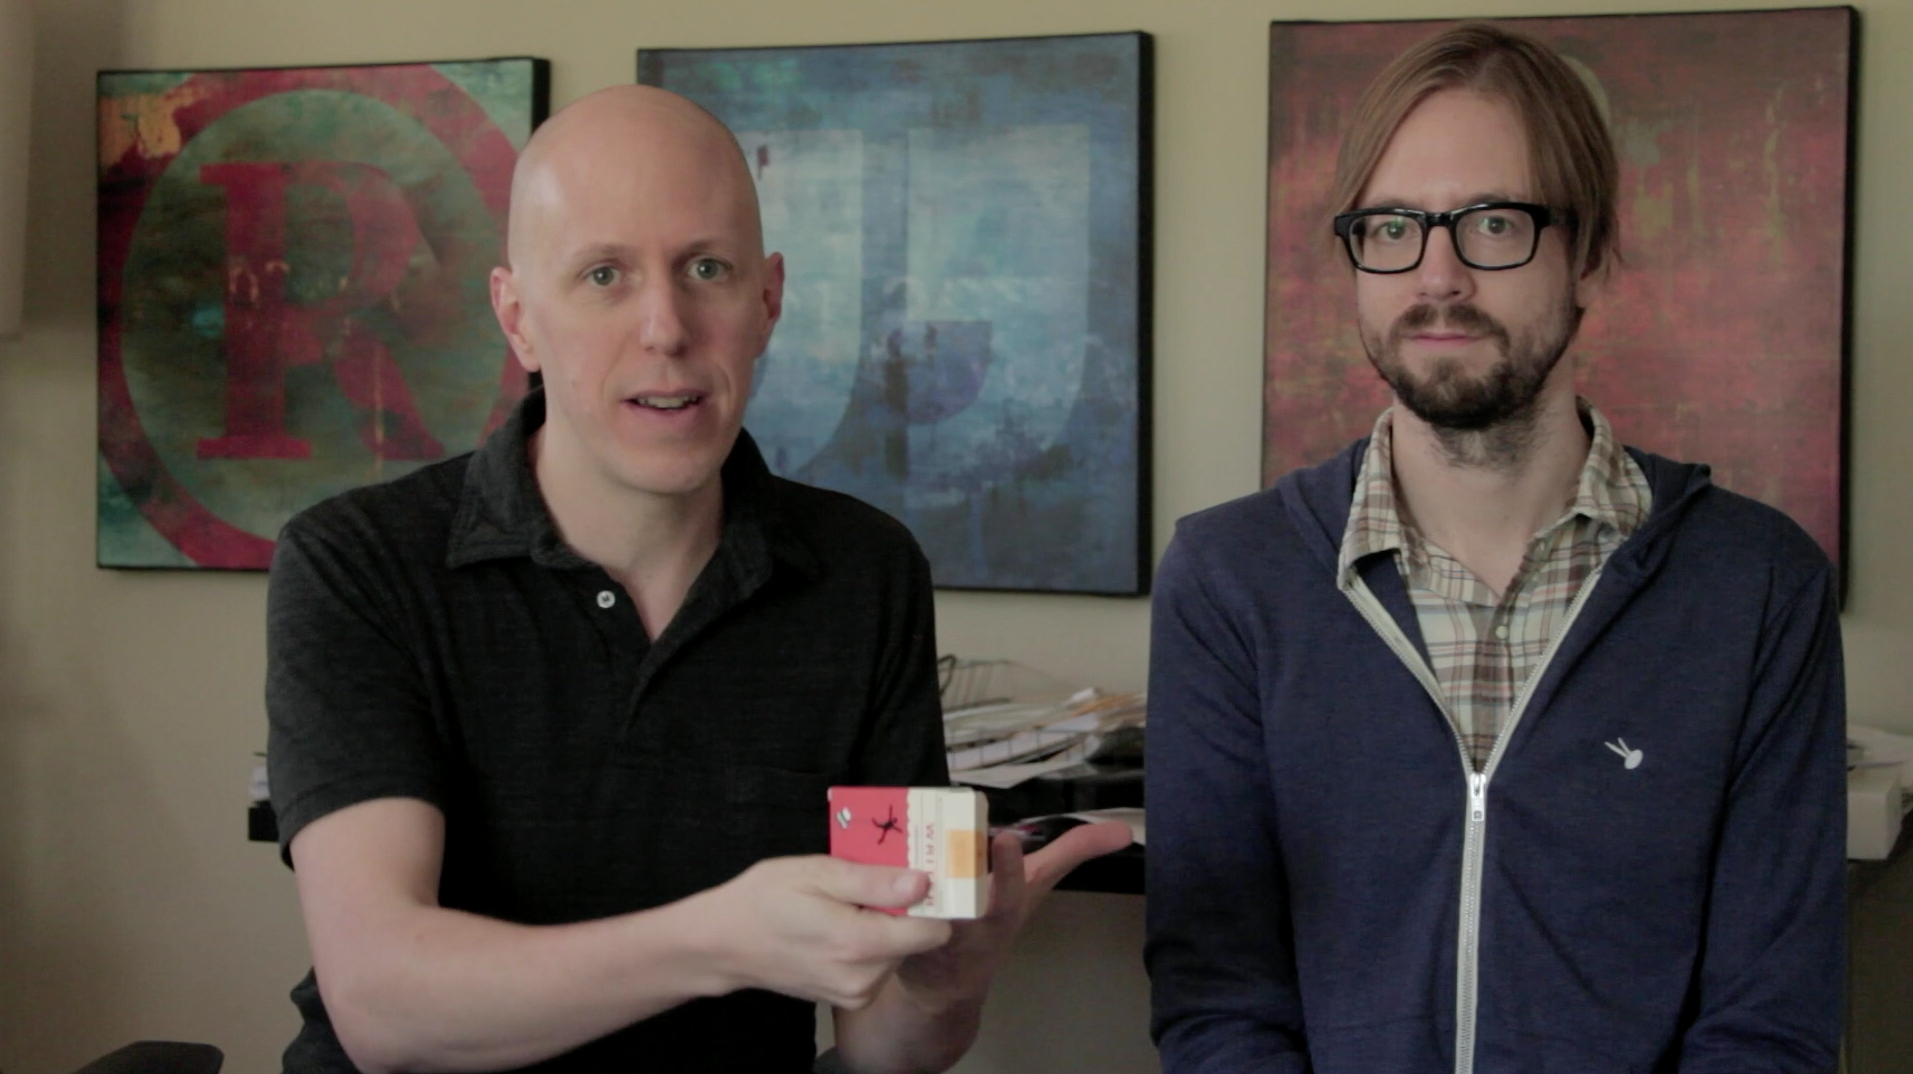 John August and Ryan Nelson, from the initial launch video